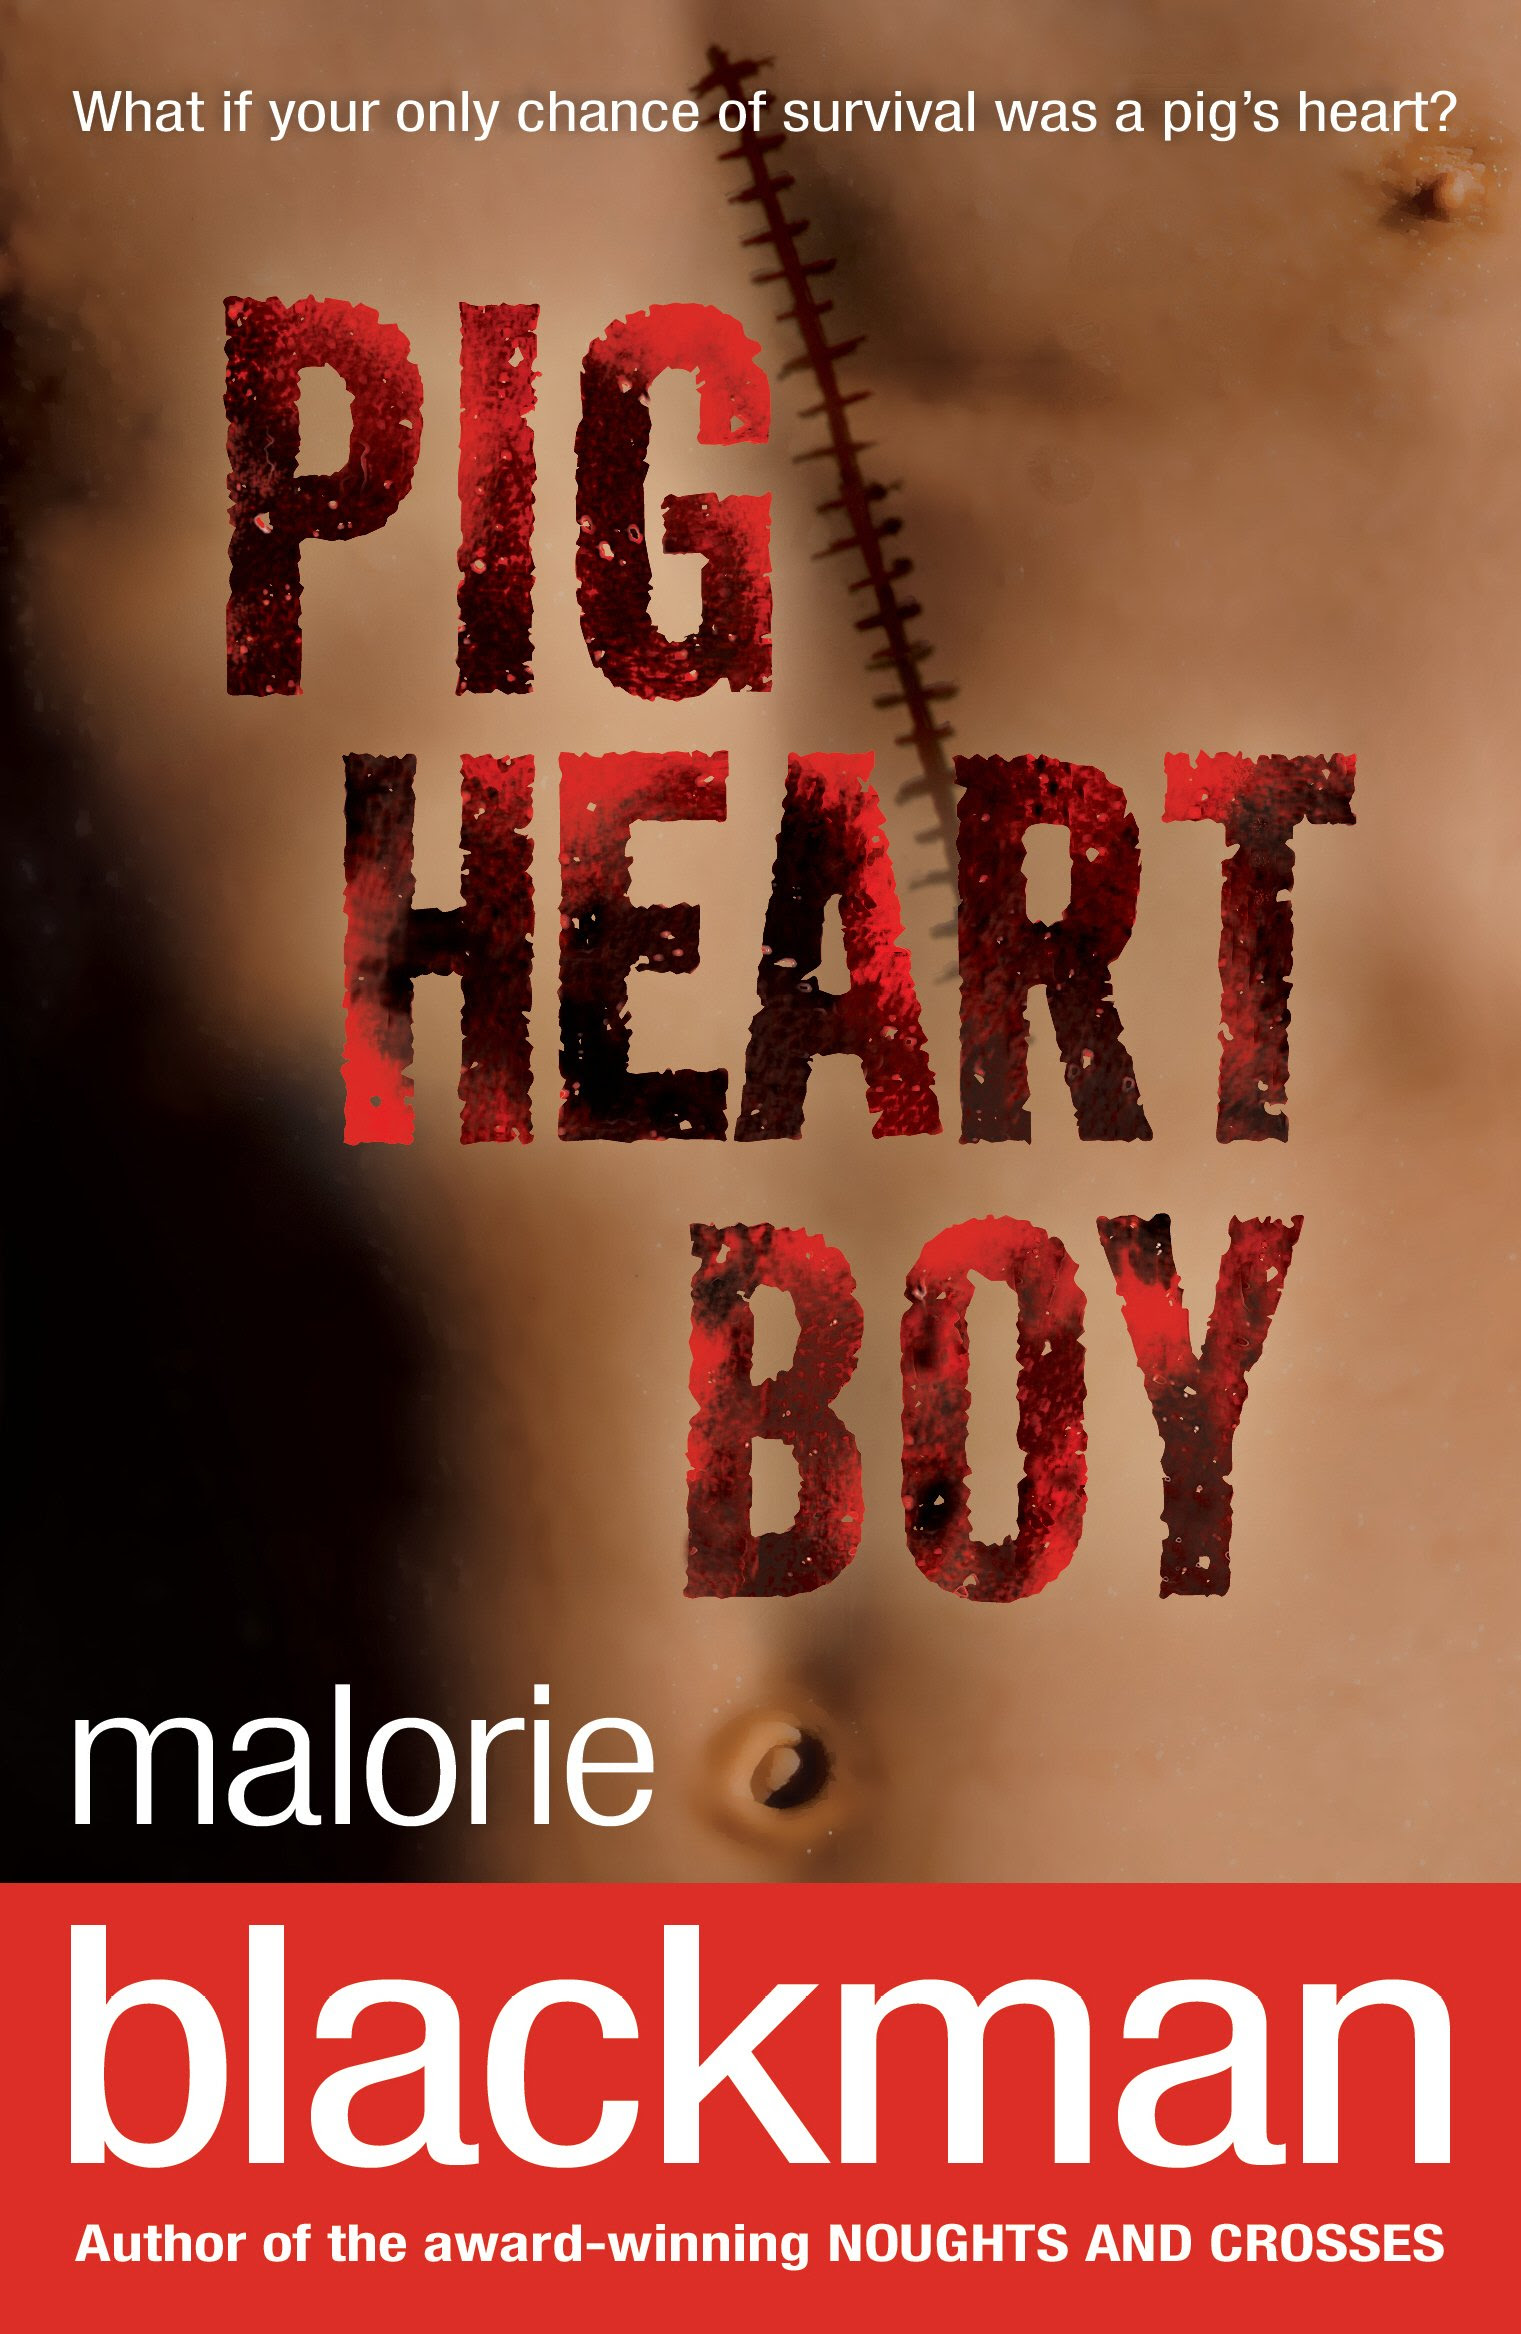 Image result for pig heart boy